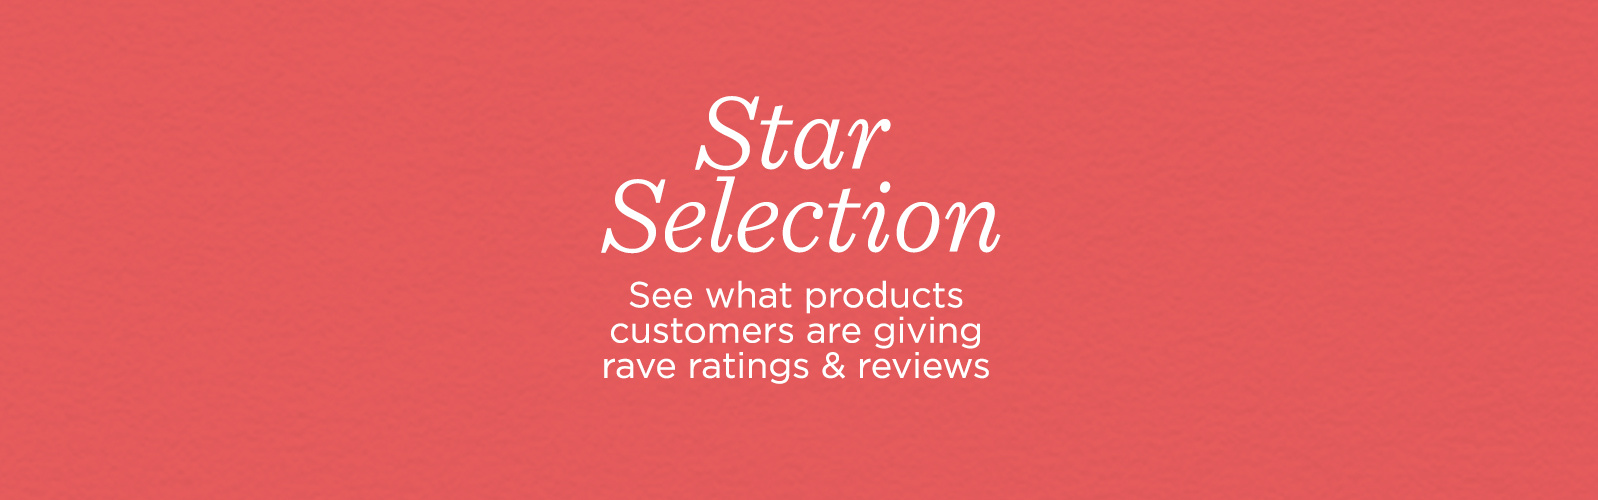 Star Selection See what products customers are giving rave ratings & reviews